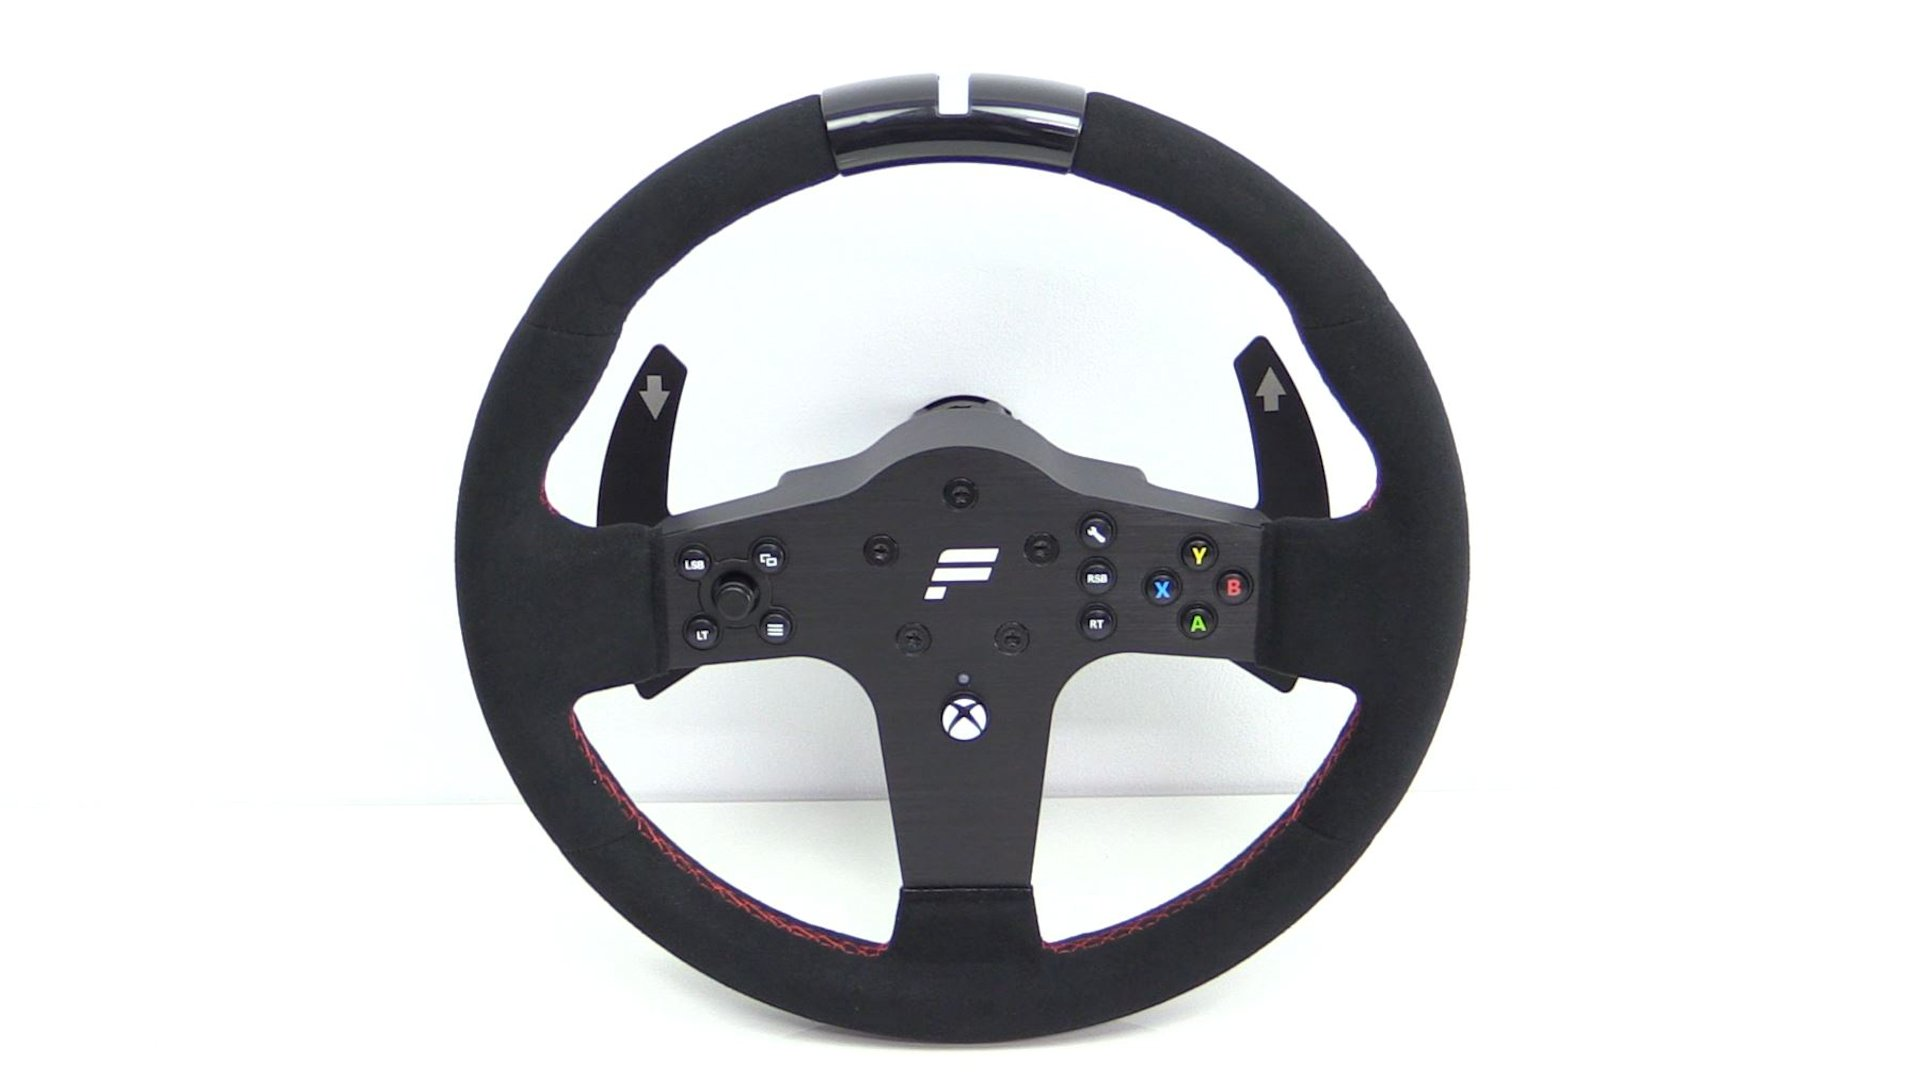 fanatec csl elite steering wheel p1 for the xbox one. Black Bedroom Furniture Sets. Home Design Ideas